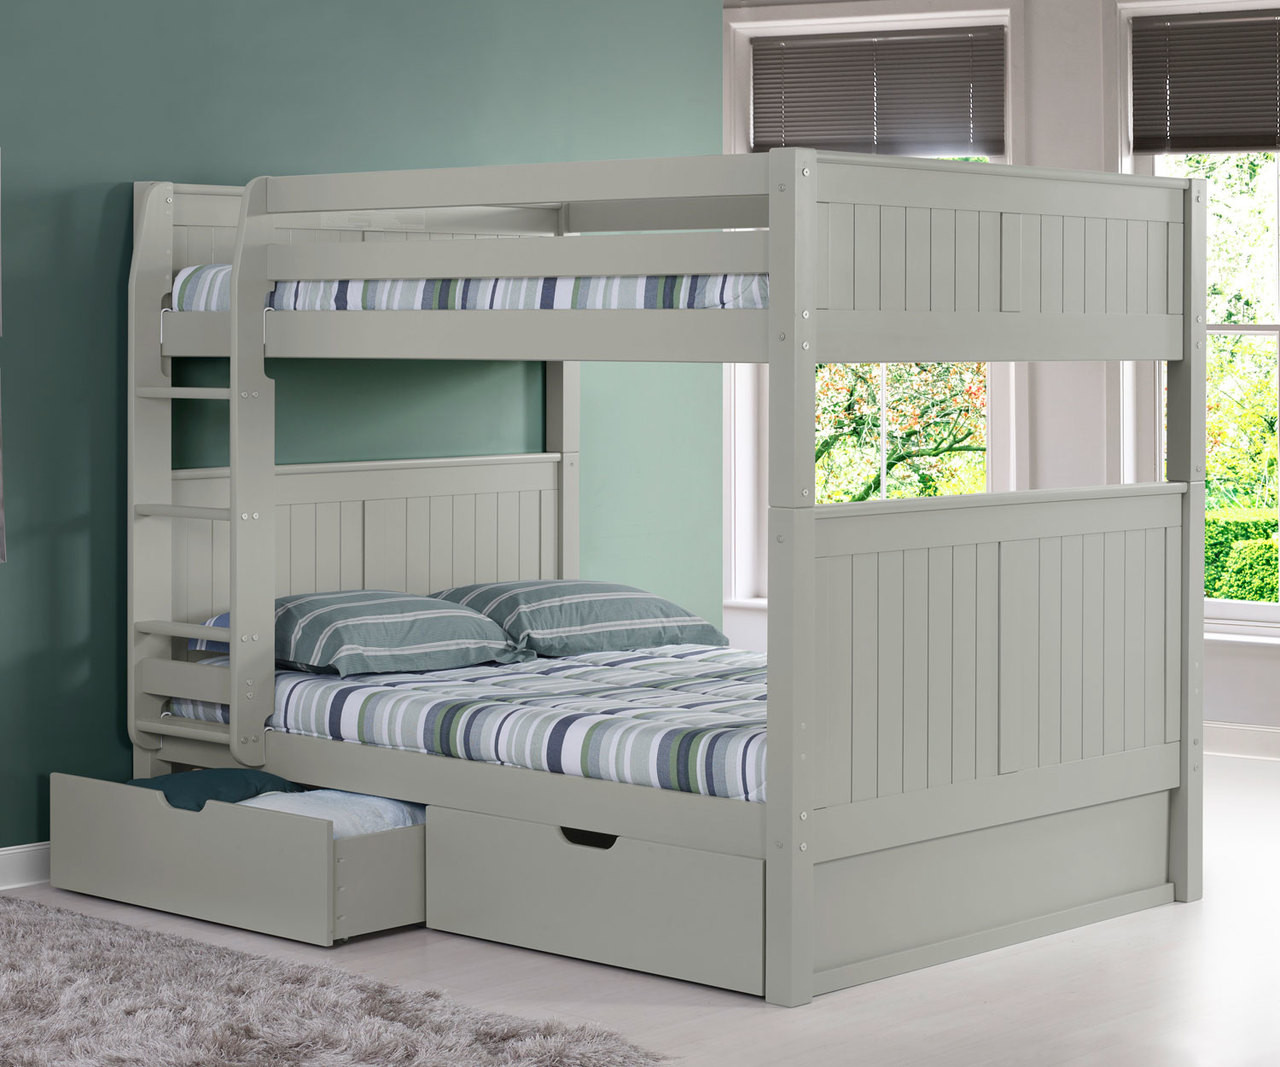 Picture of: Camaflexi Full Over Full Bunk Bed In Grey E1624 Camaflexi Furniture Solid Wood Kids Furniture